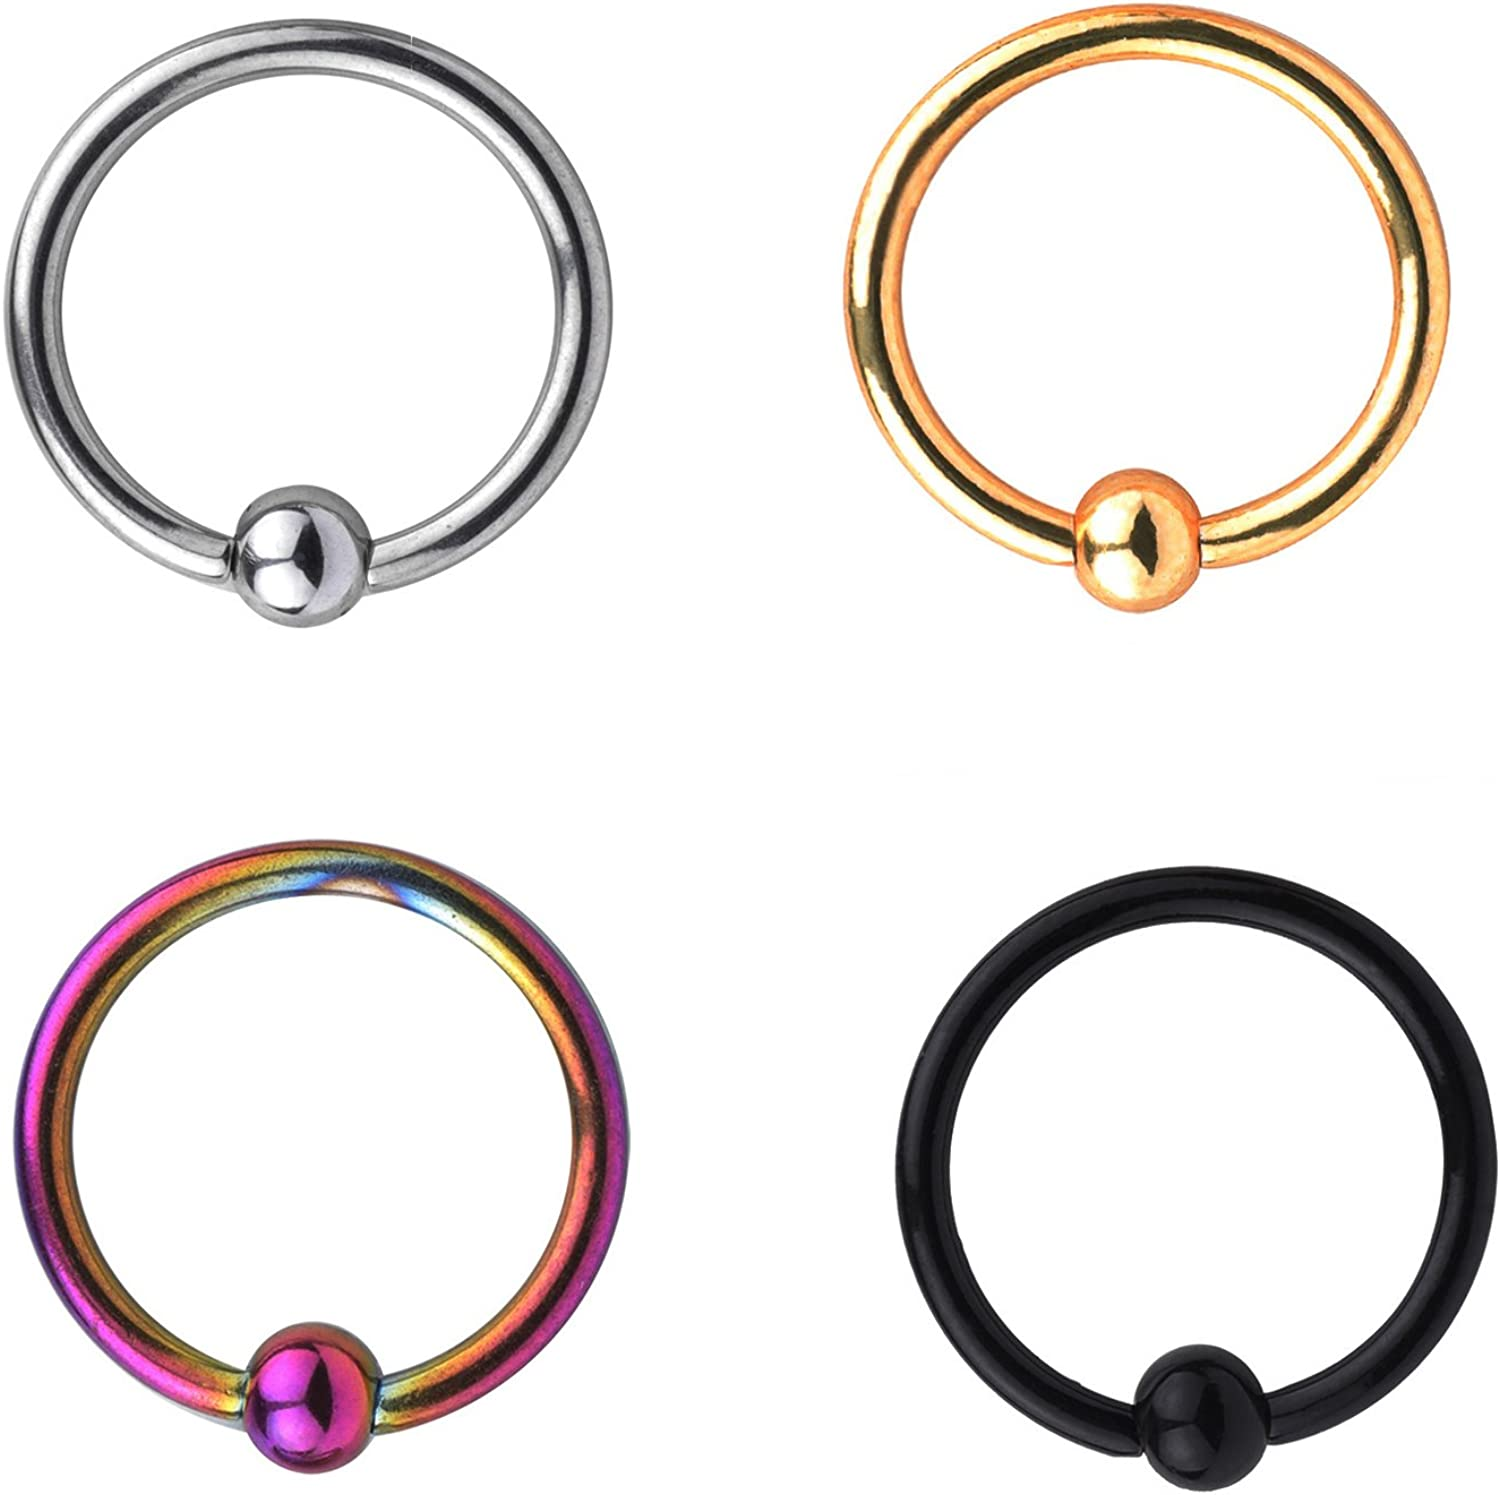 Z2Z 16G Nose Hoop New Max 75% OFF Shipping Free Lip Eyebrow Tragus Cartilage Tongue Helix Sept